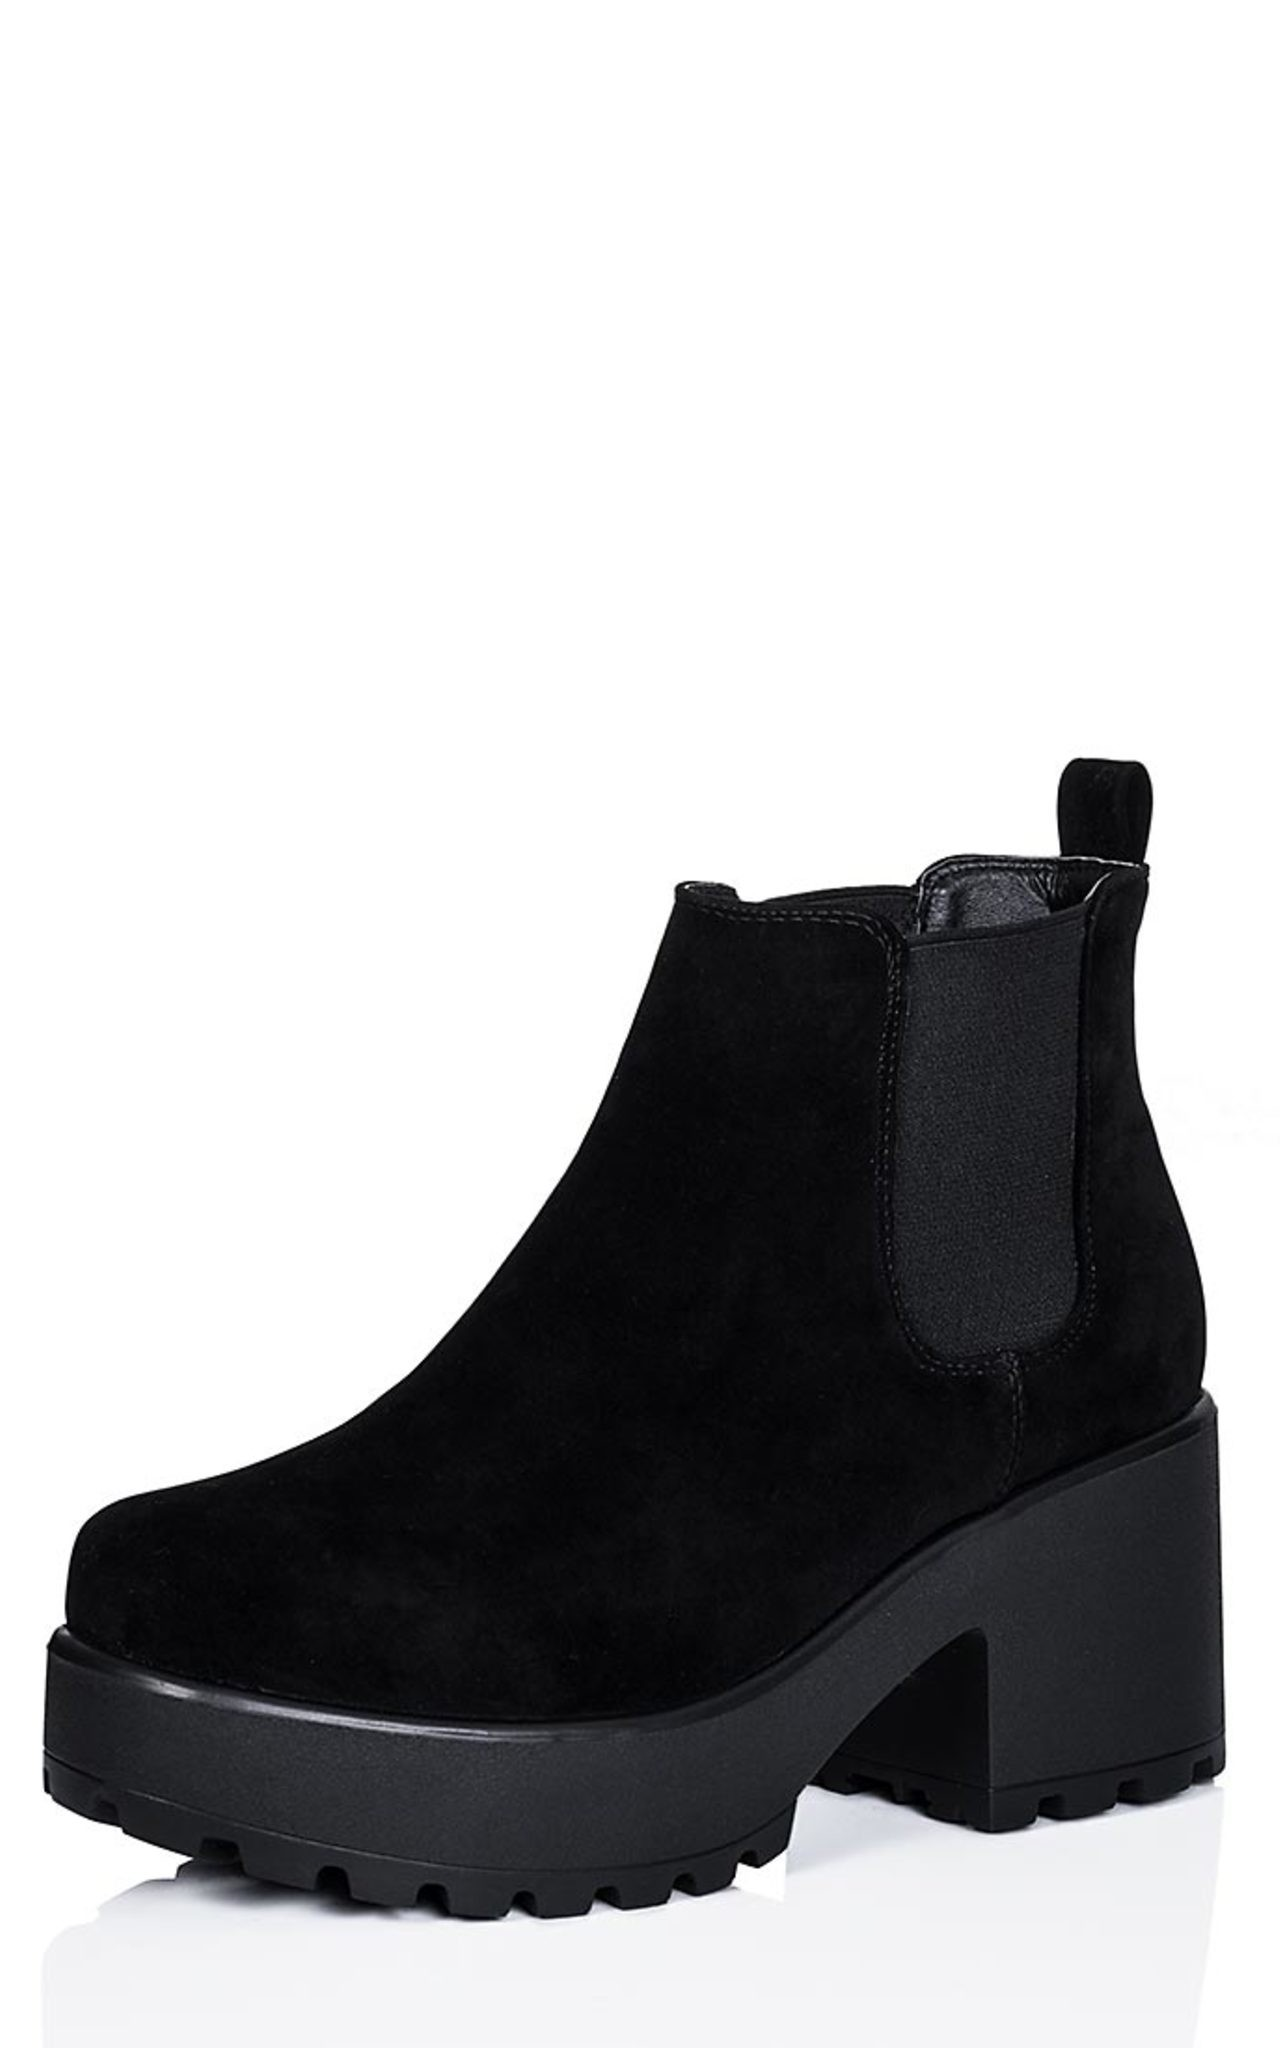 bb32a2d39735 xlarge heeled-cleated-sole-platform-chelsea-ankle-boots-spylovebuy-nd23- black-suede-1.jpg